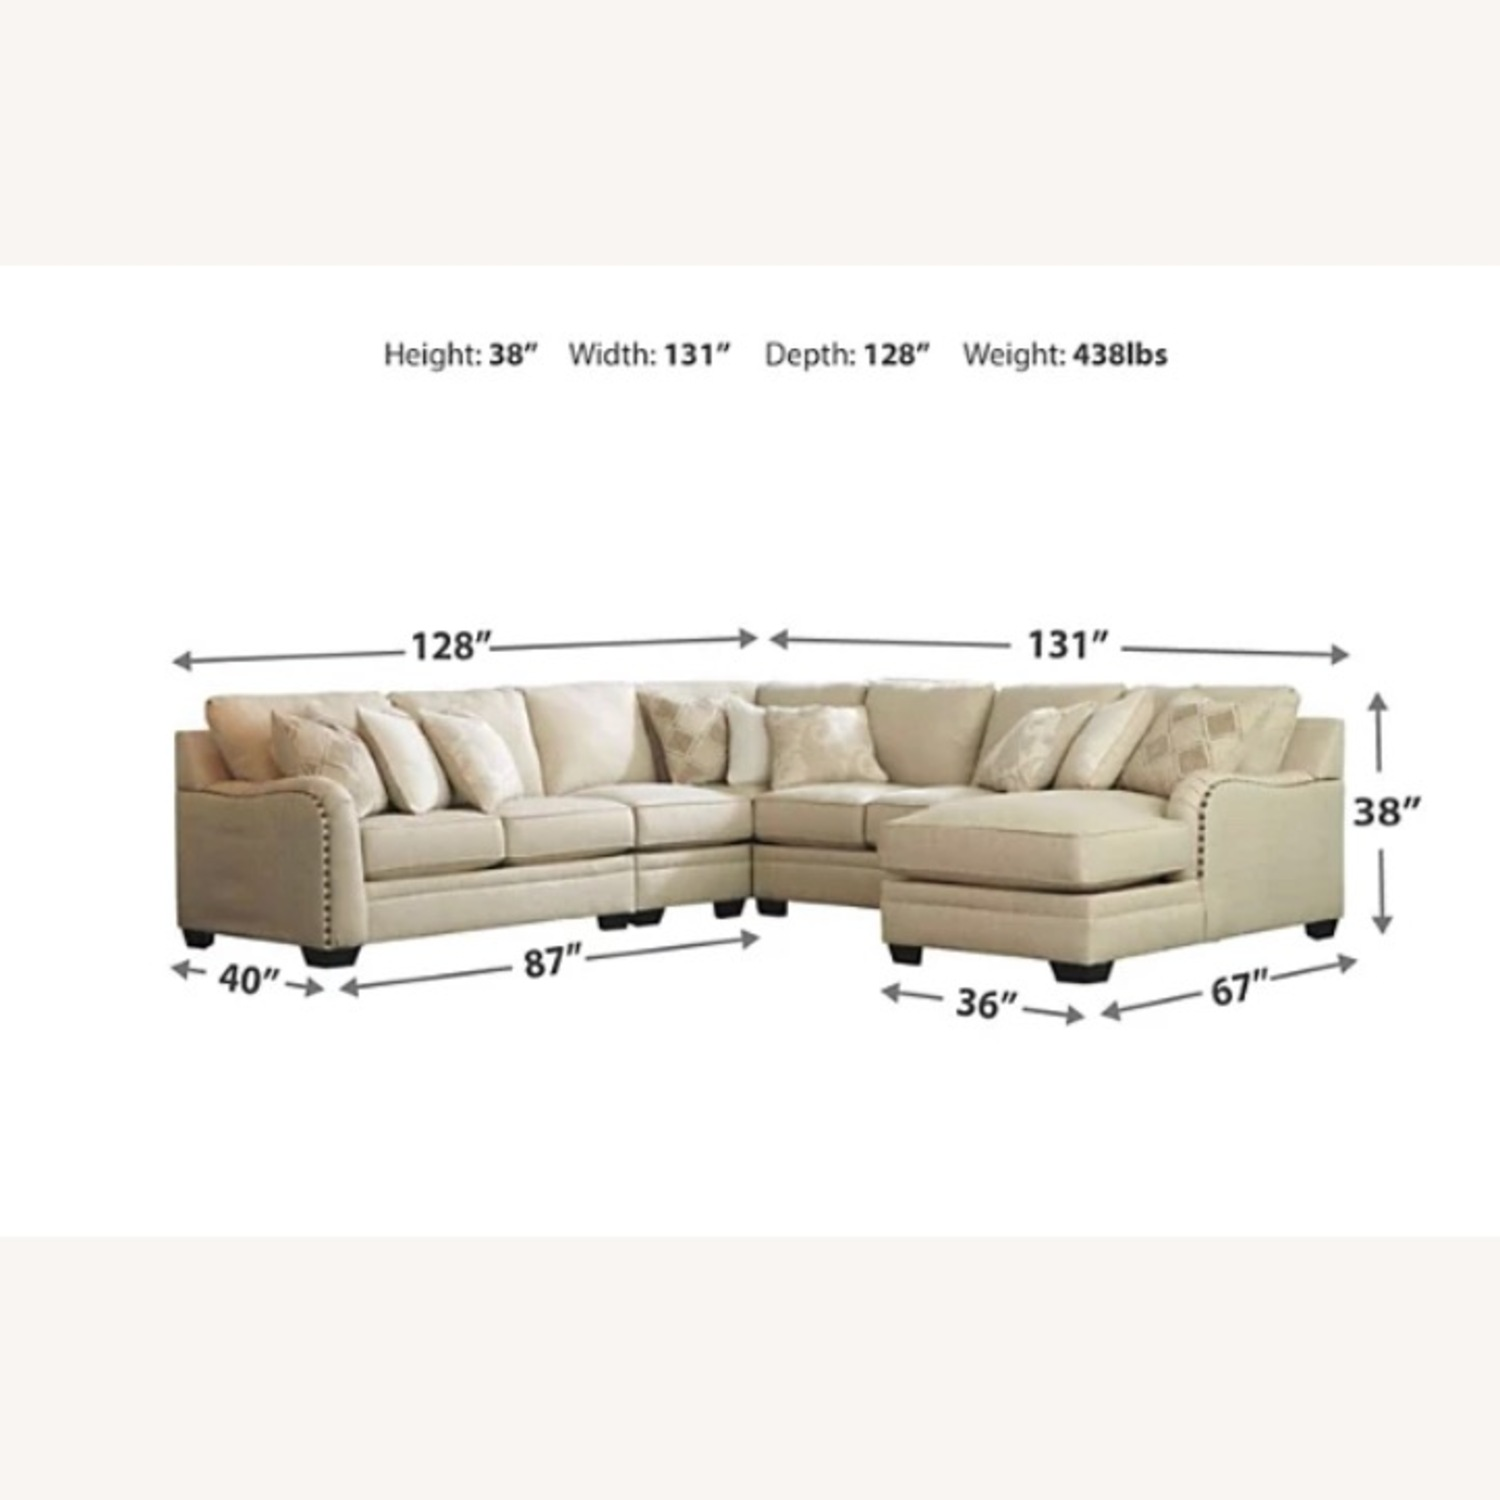 Ashley Furniture 5-pc Sectional with Chaise - image-8